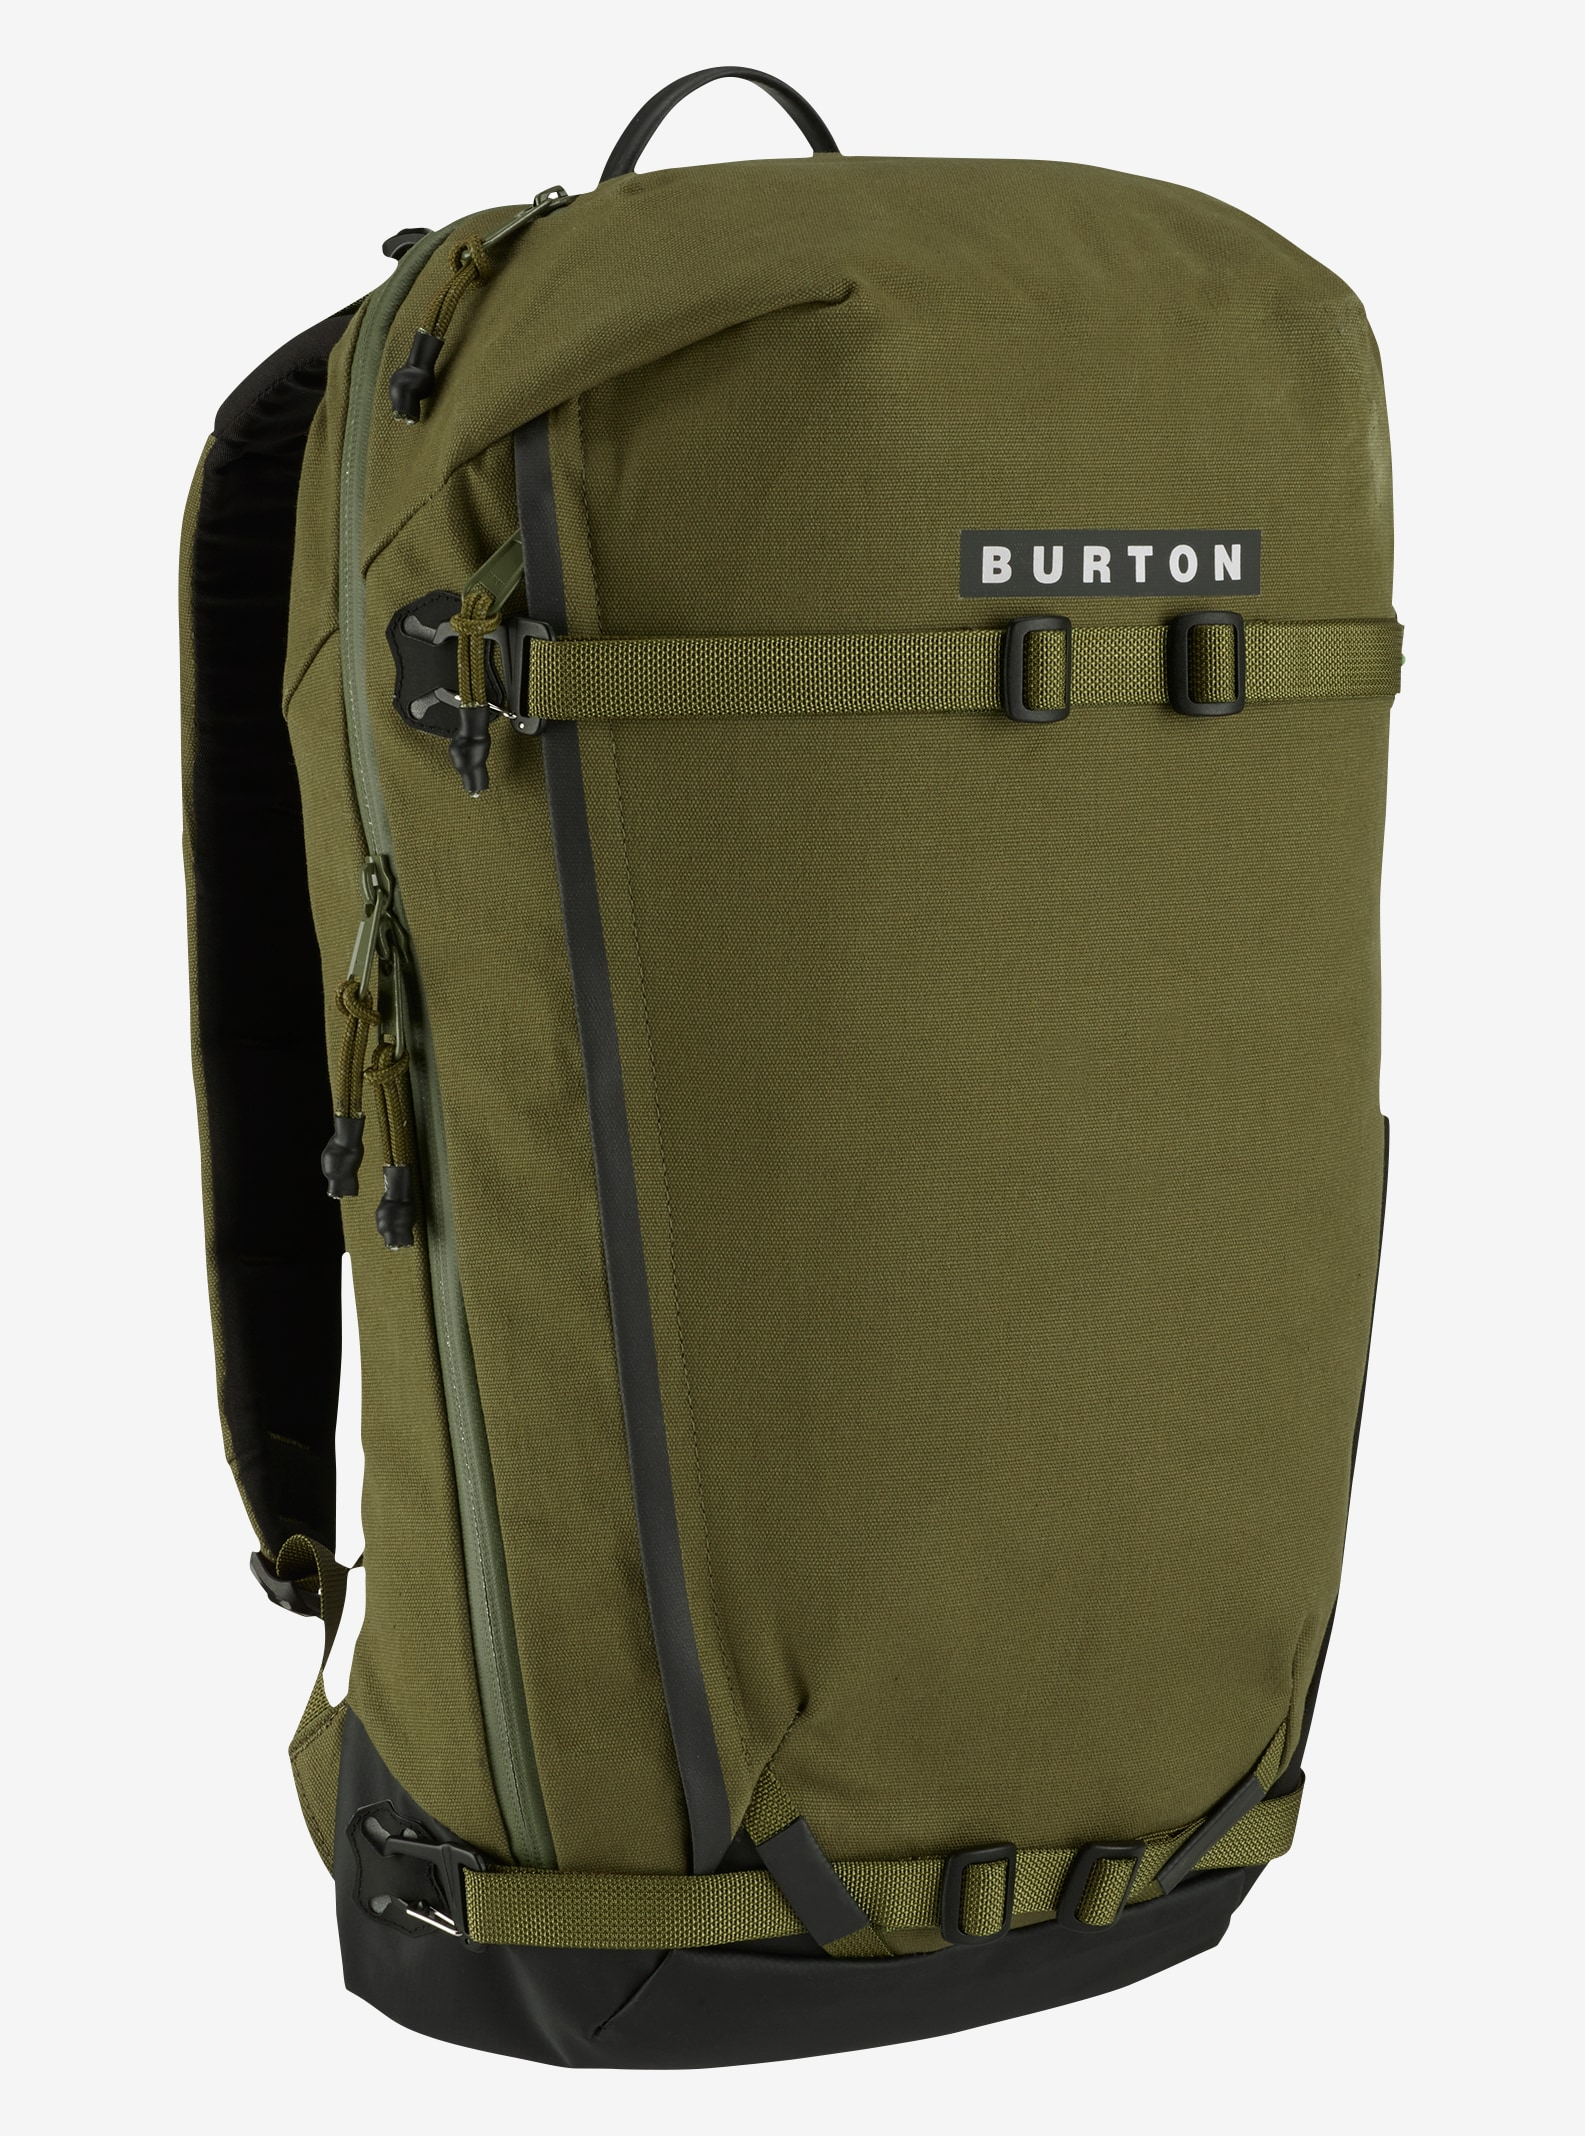 Burton Gorge Backpack shown in Olive Branch Cotton Cordura®